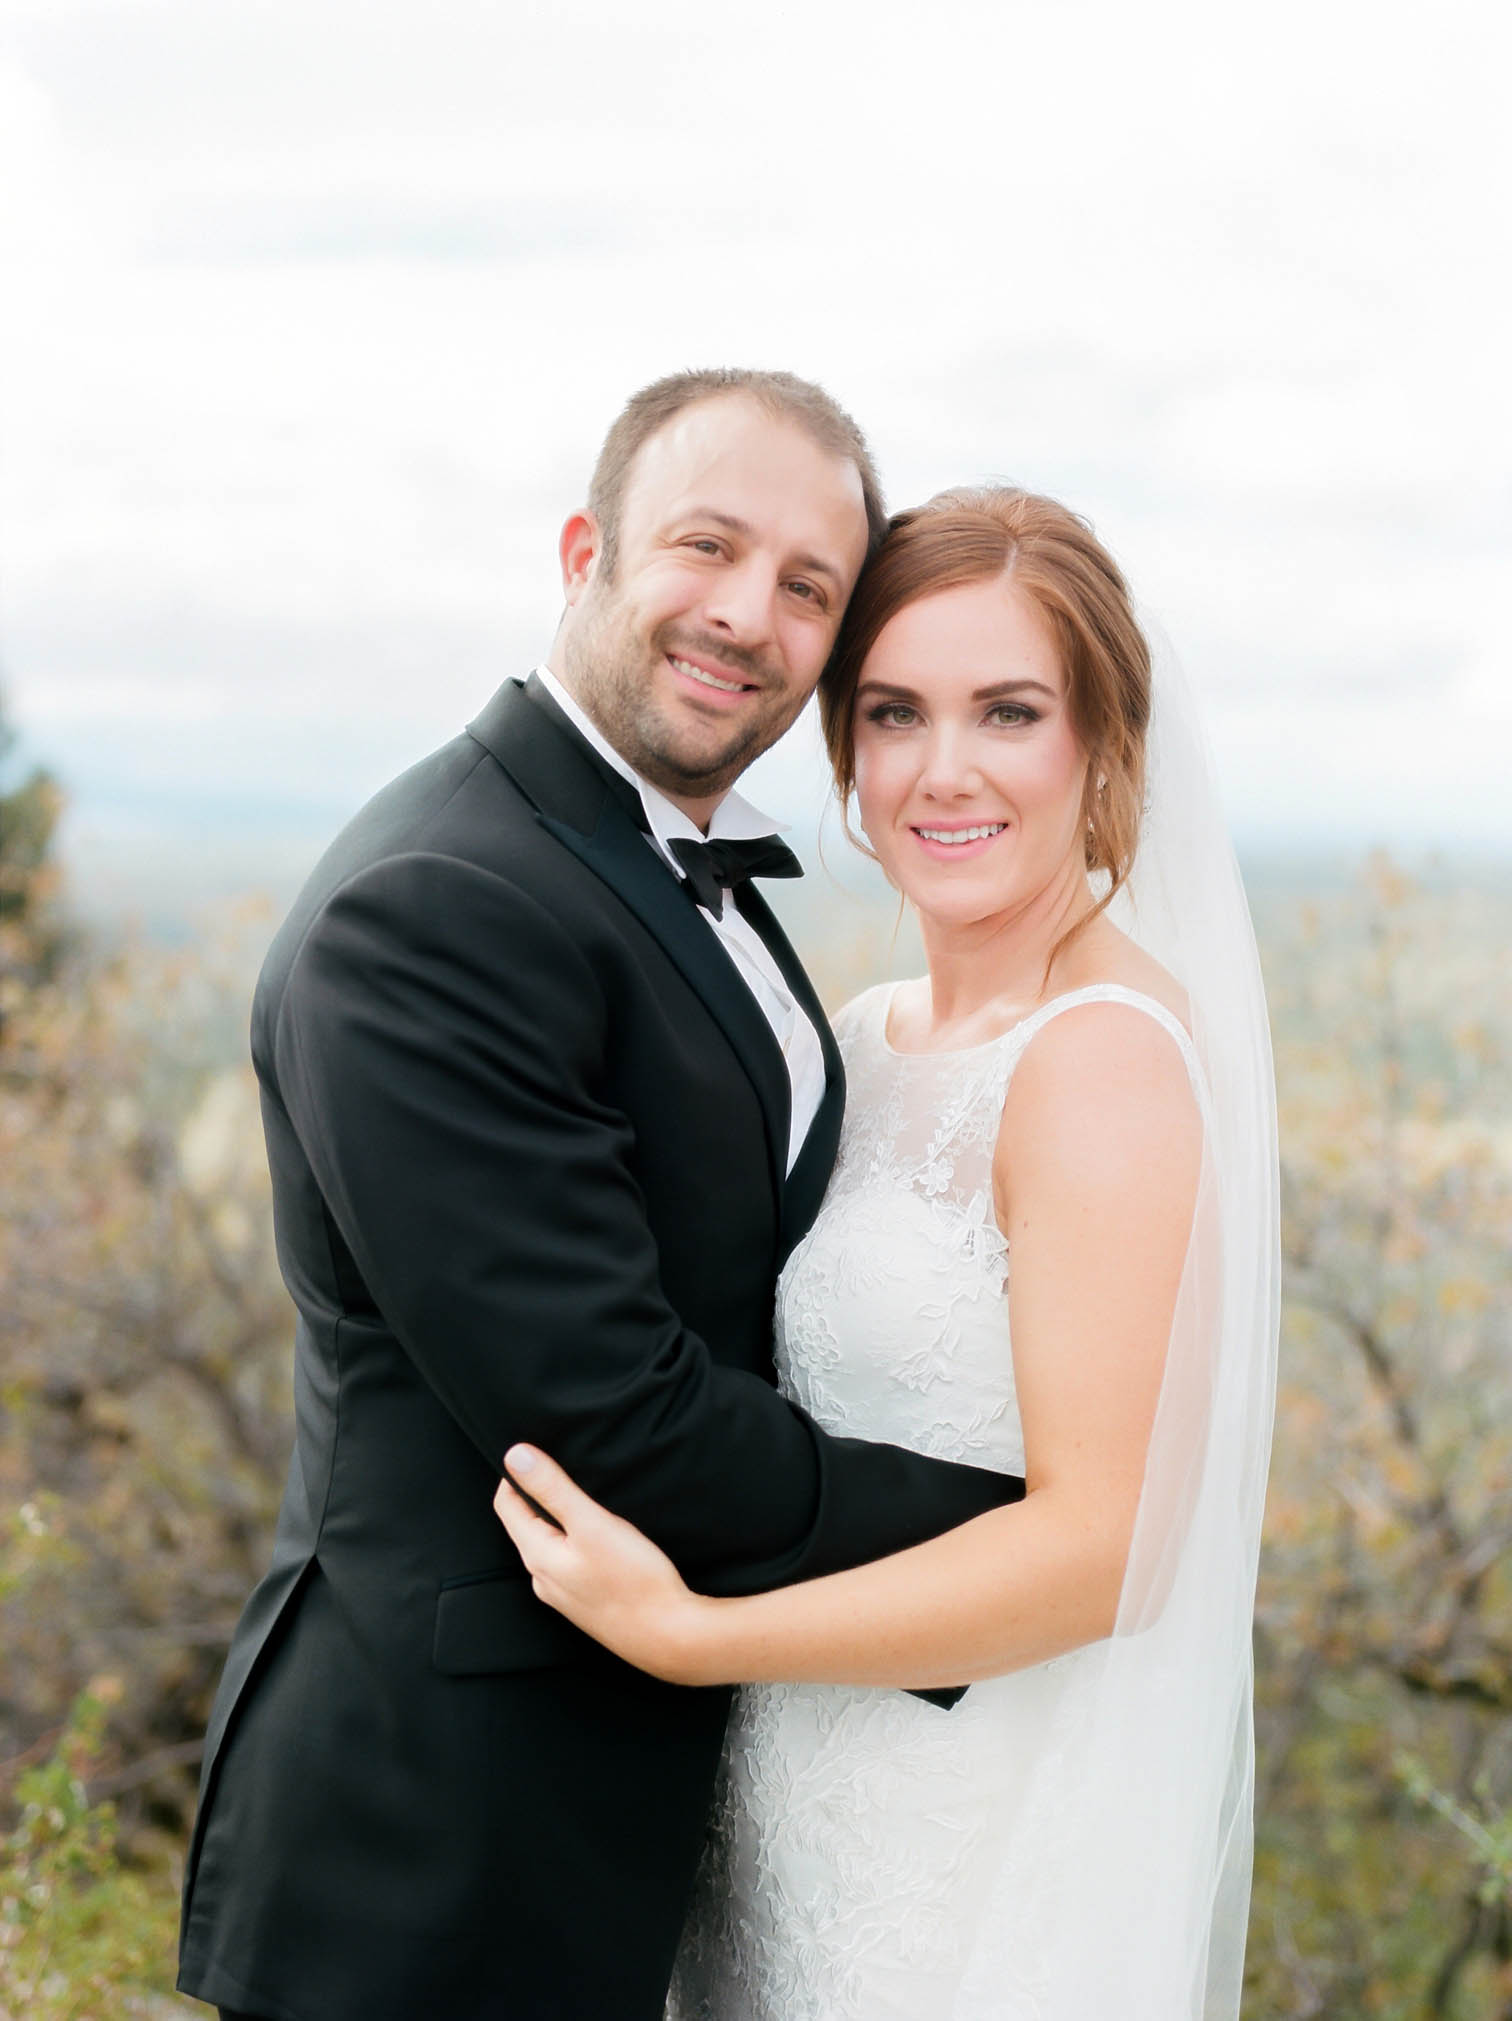 Mountain Weddings, Danielle DeFiore Photographer, Bride and Groom Portraits, Colorado Wedding Photographers, Castle Wedding, Classic Black tie Wedding, Film Photographer, Colorado Weddings